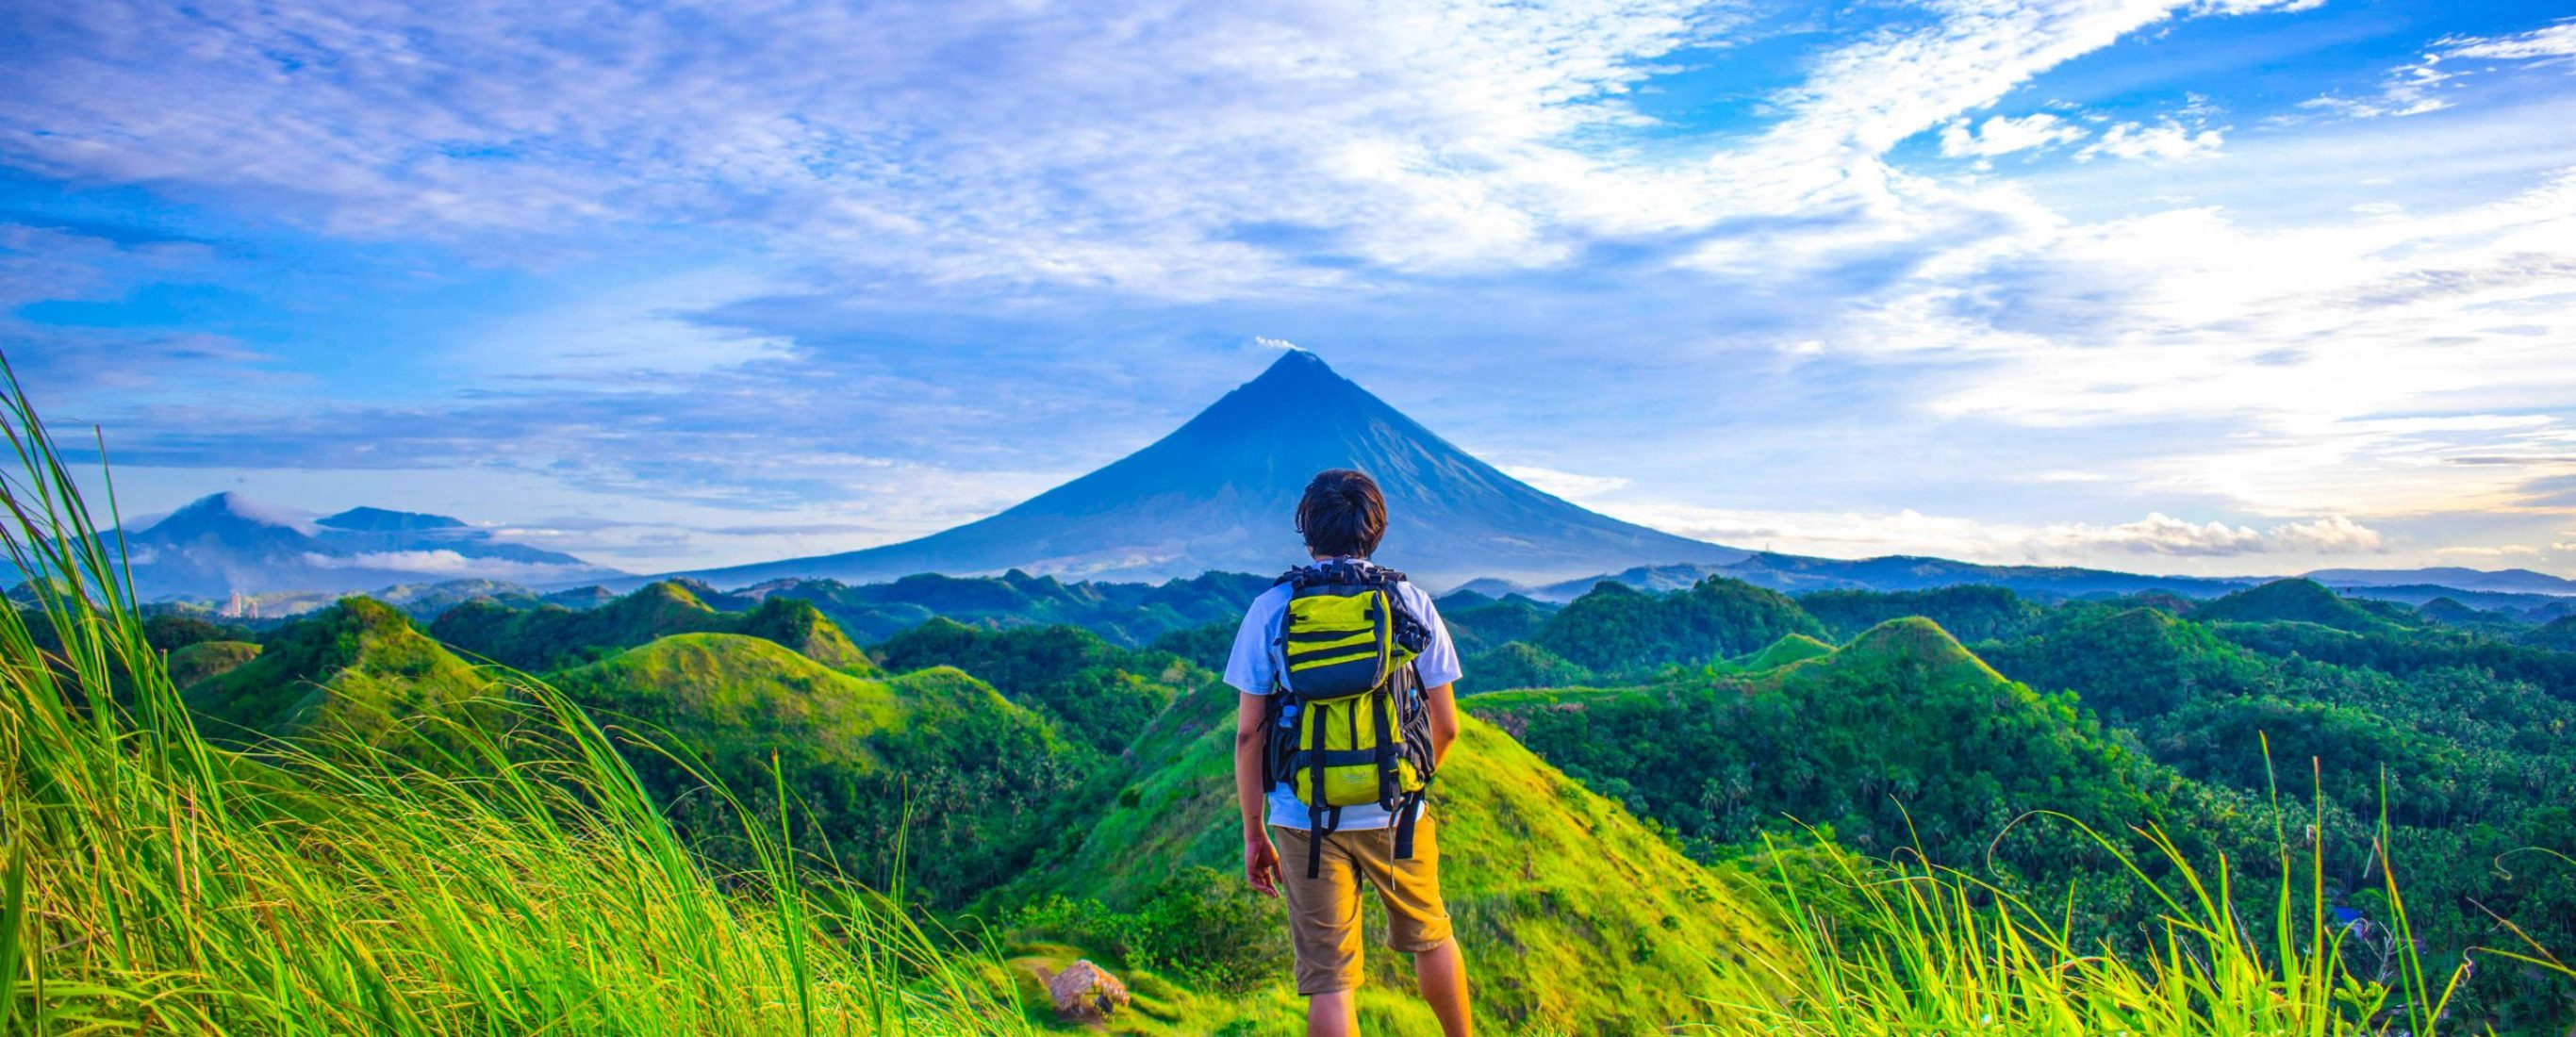 The Most Remarkable Mountains in the Philippines | phmillennia | Cover photo by Archie Binamira on Pexels (edited)